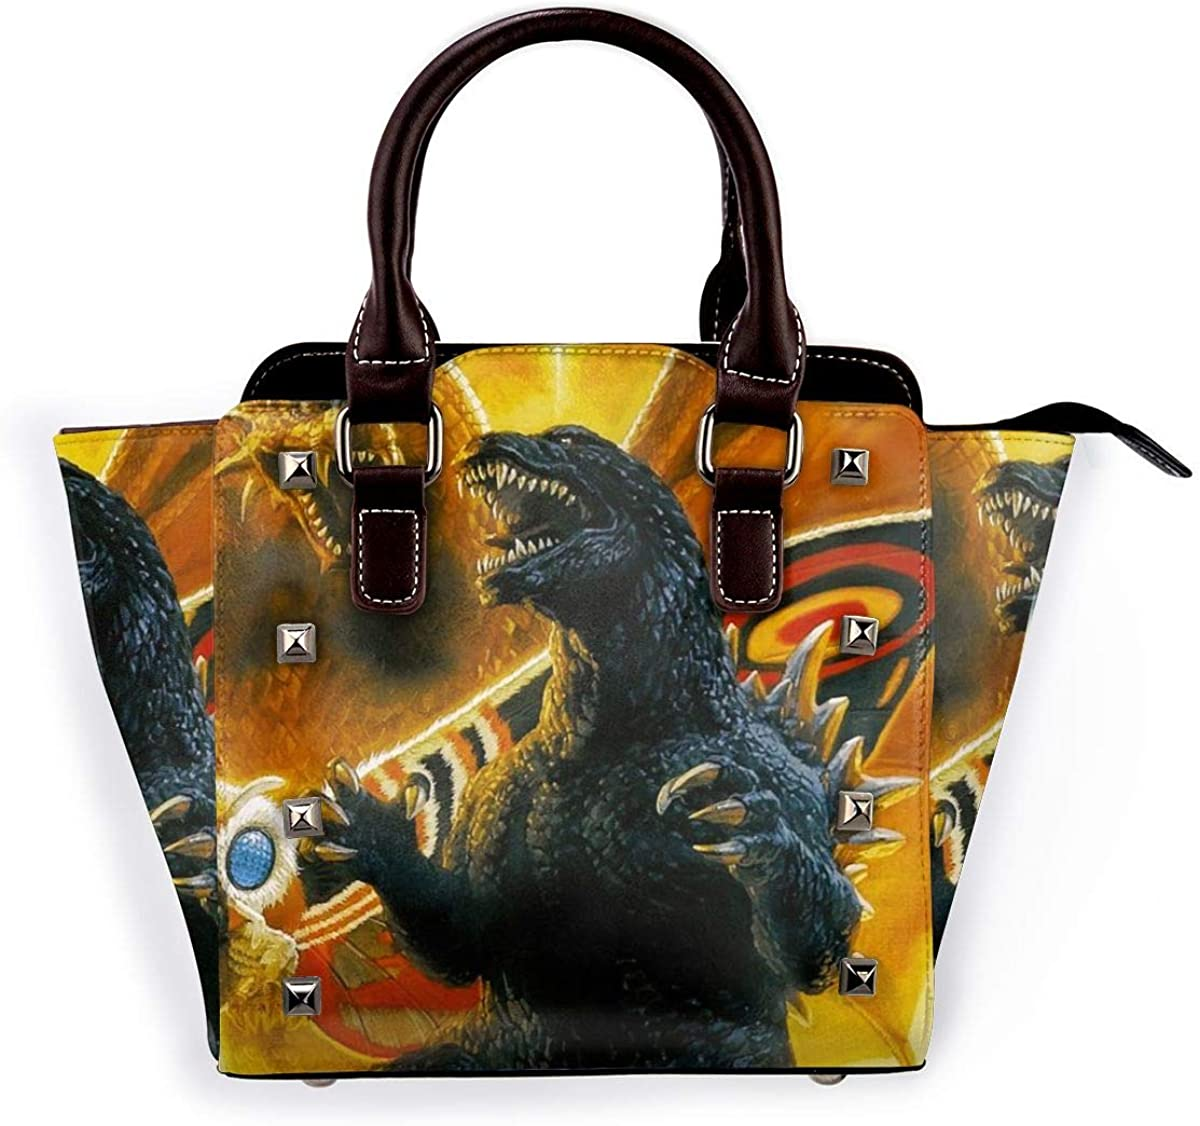 Woman God-Zilla King Of The Monsters Leather Rivet Shoulder Bag Crossbody Bag Business Satchel Purse Travel Gym Shopping Adjustable Shoulder Strap